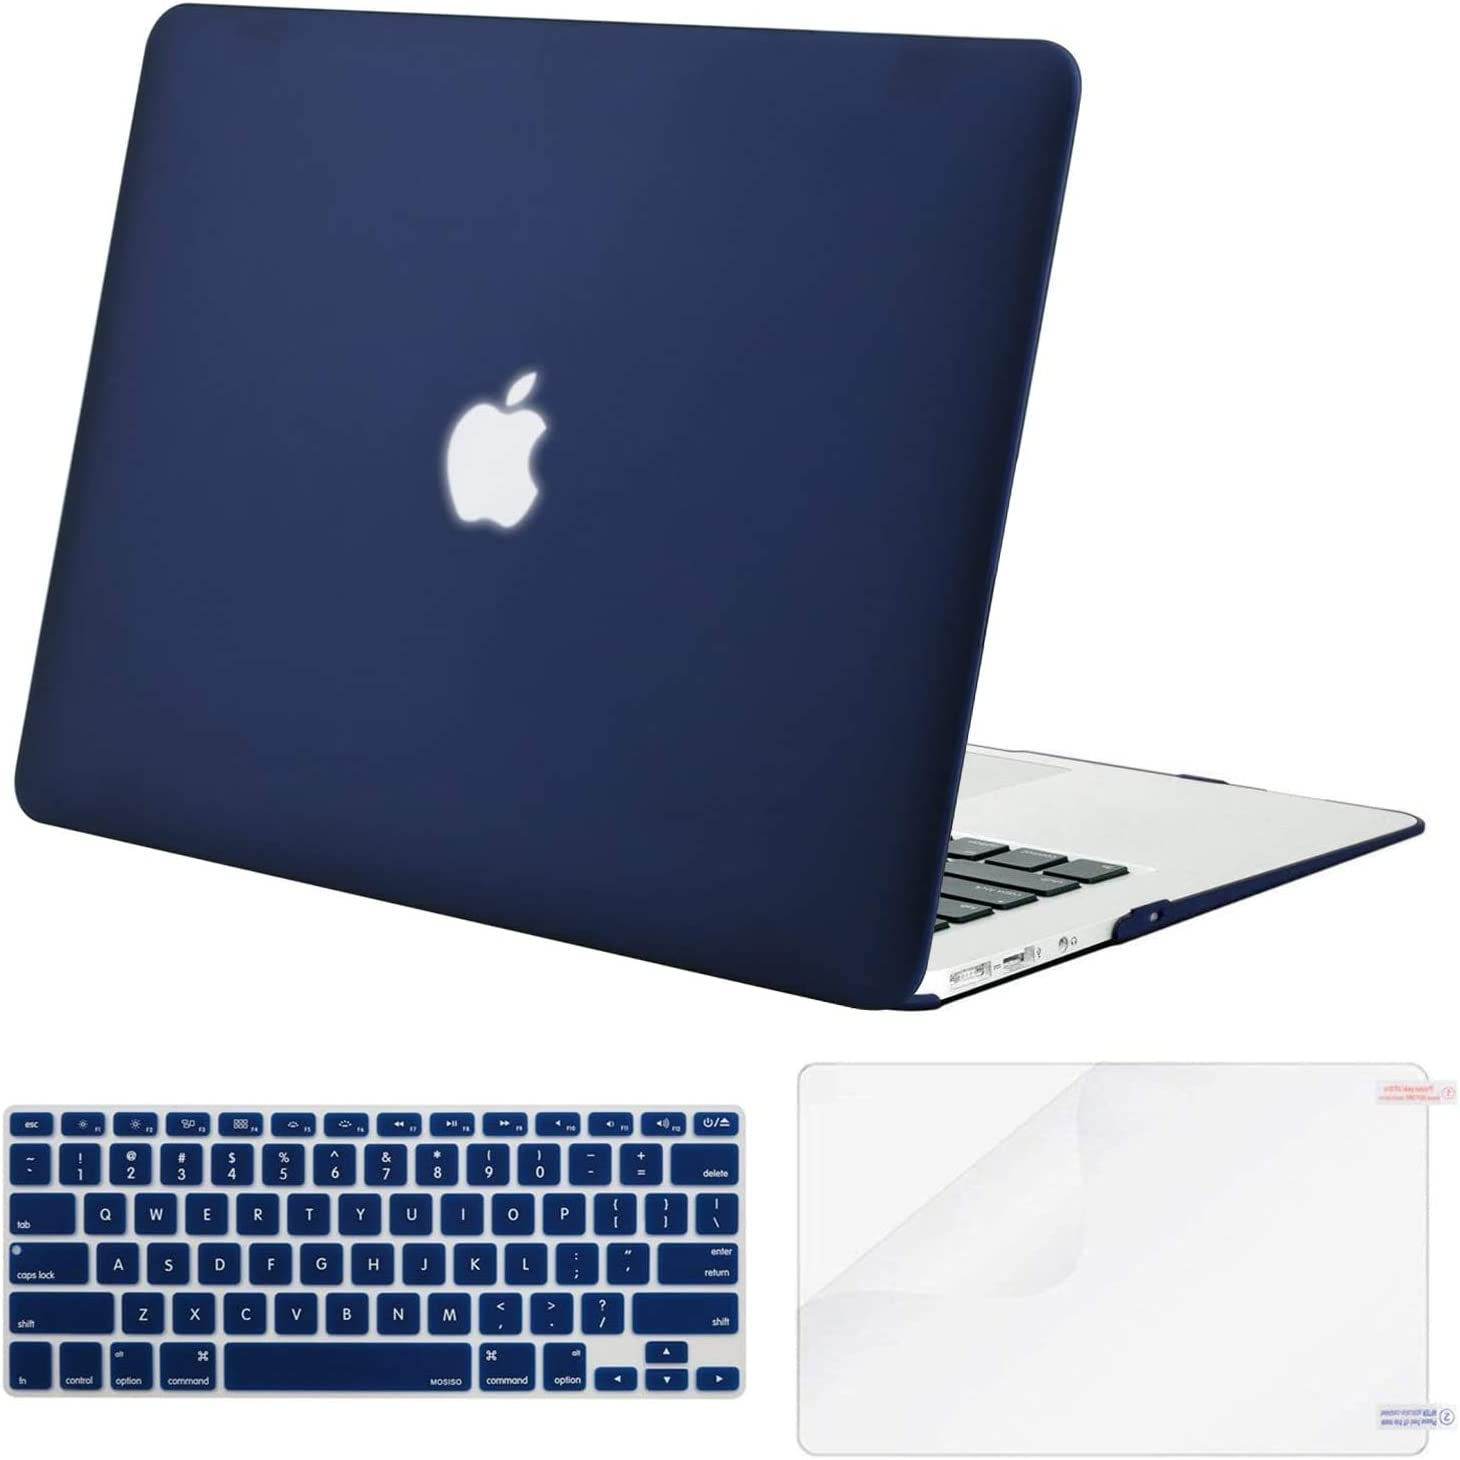 MOSISO Plastic Hard Shell Case & Keyboard Cover Skin & Screen Protector Only Compatible with MacBook Air 11 inch (Models: A1370 & A1465), Navy Blue